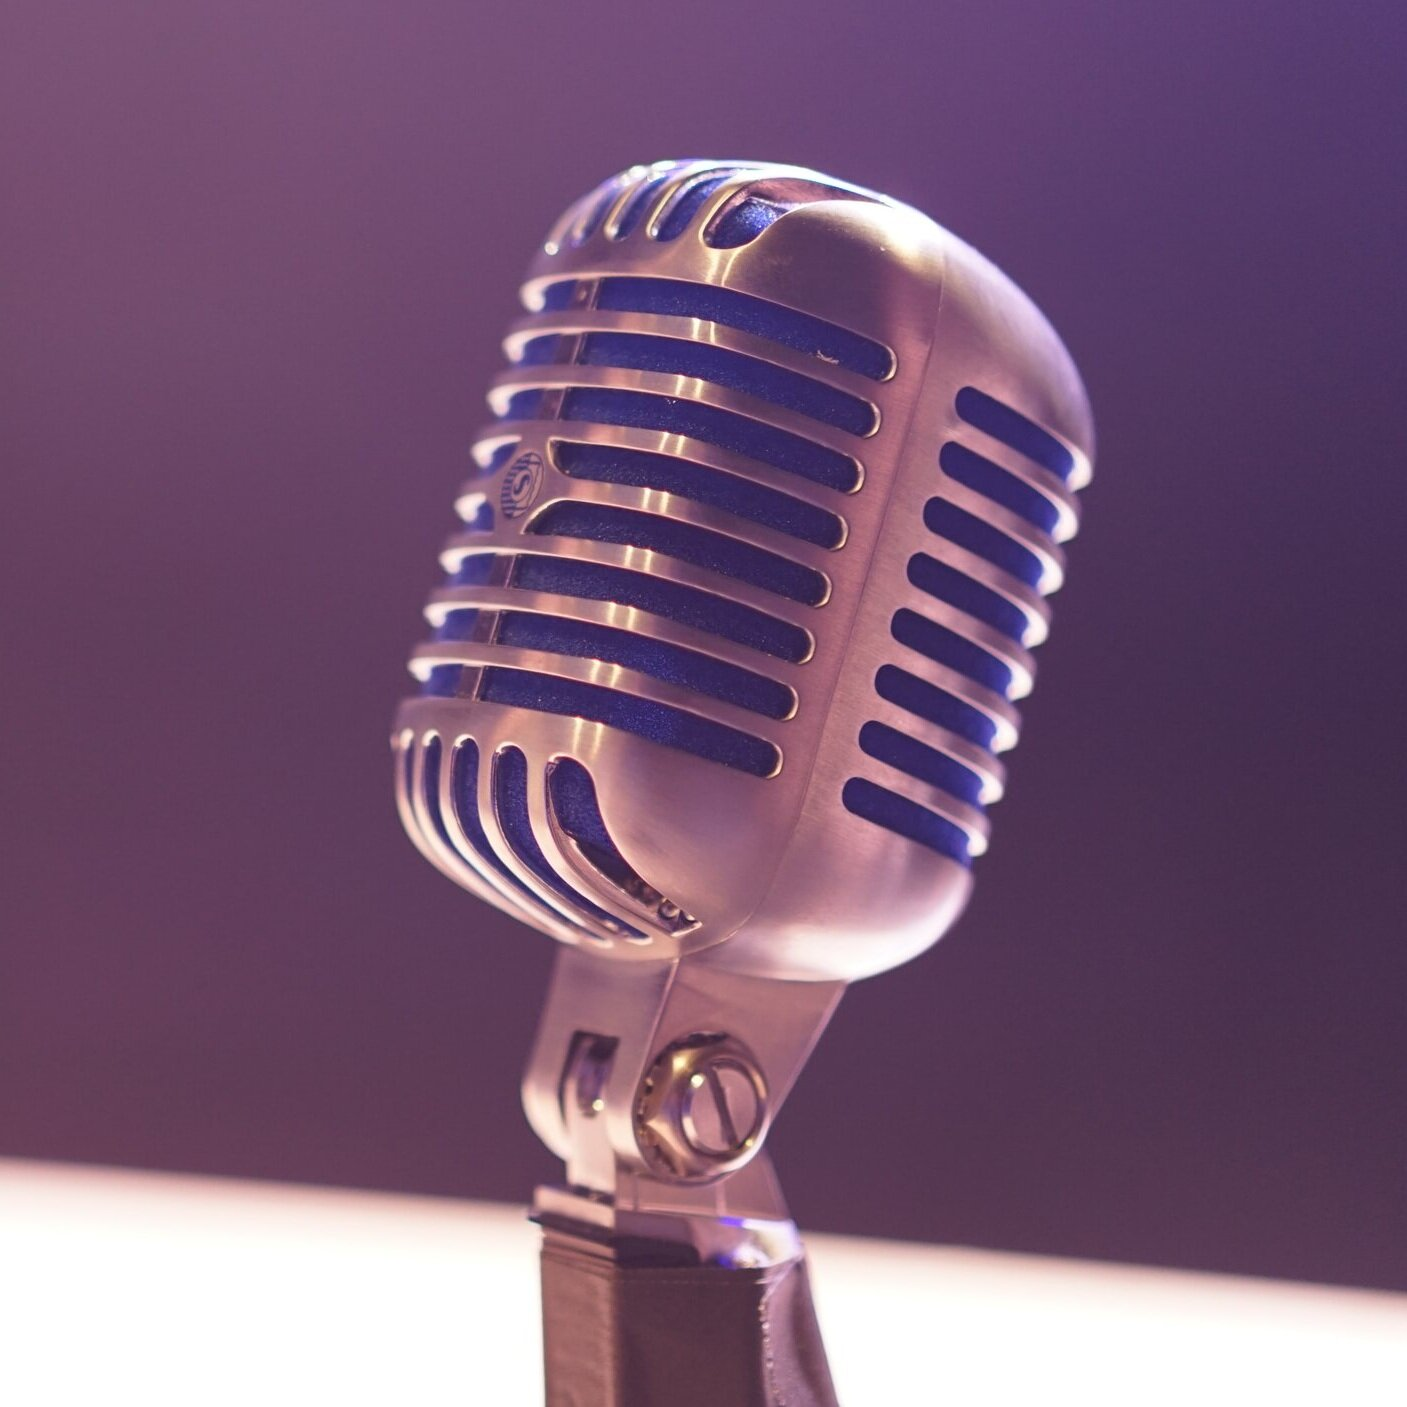 public speaking - A connected communication who delivers engaging content to audiences big and small through public speaking, panels & bespoke workshops.